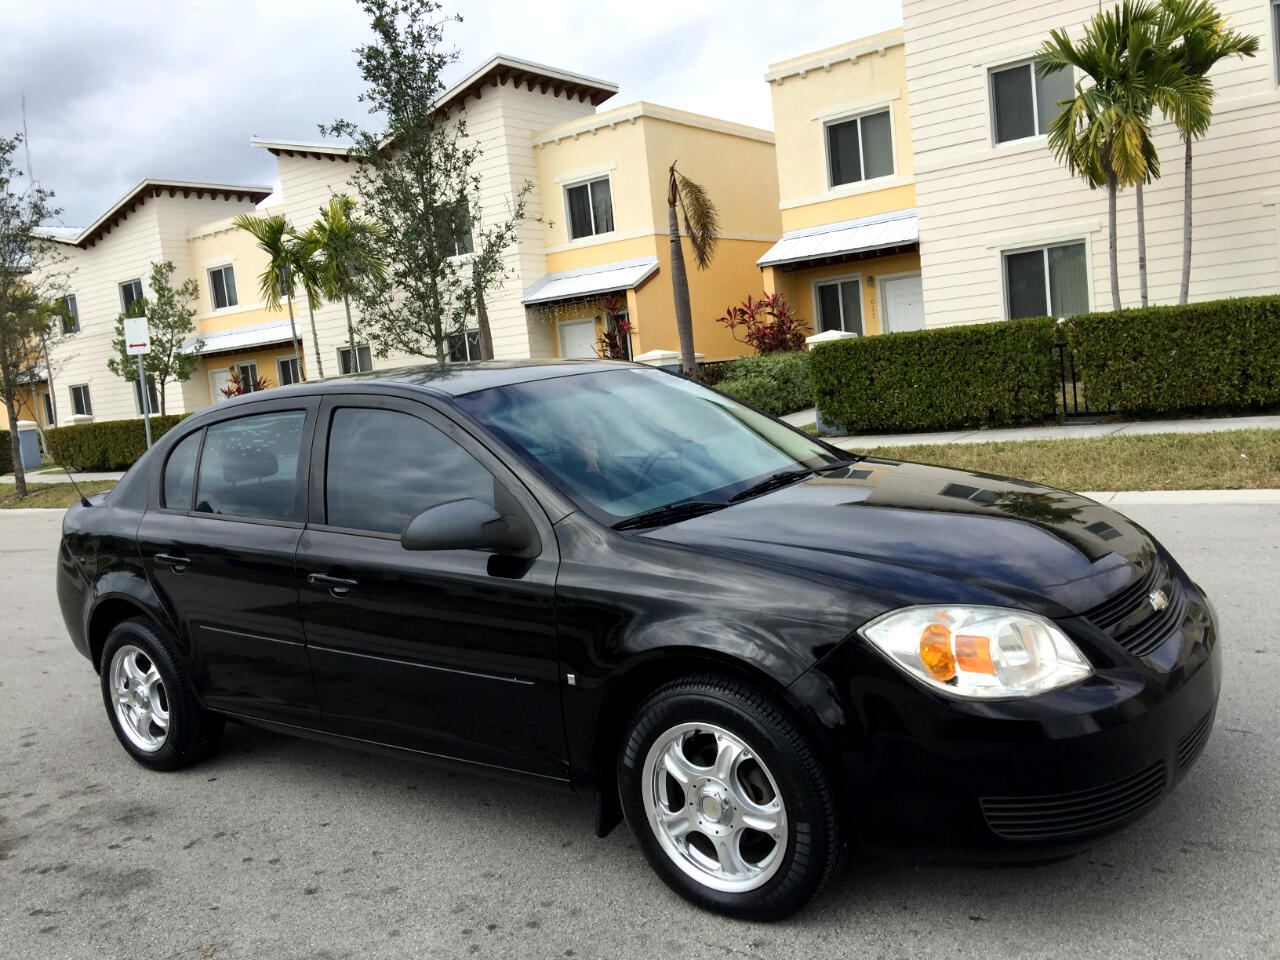 Chevrolet Cobalt Sedan 2005